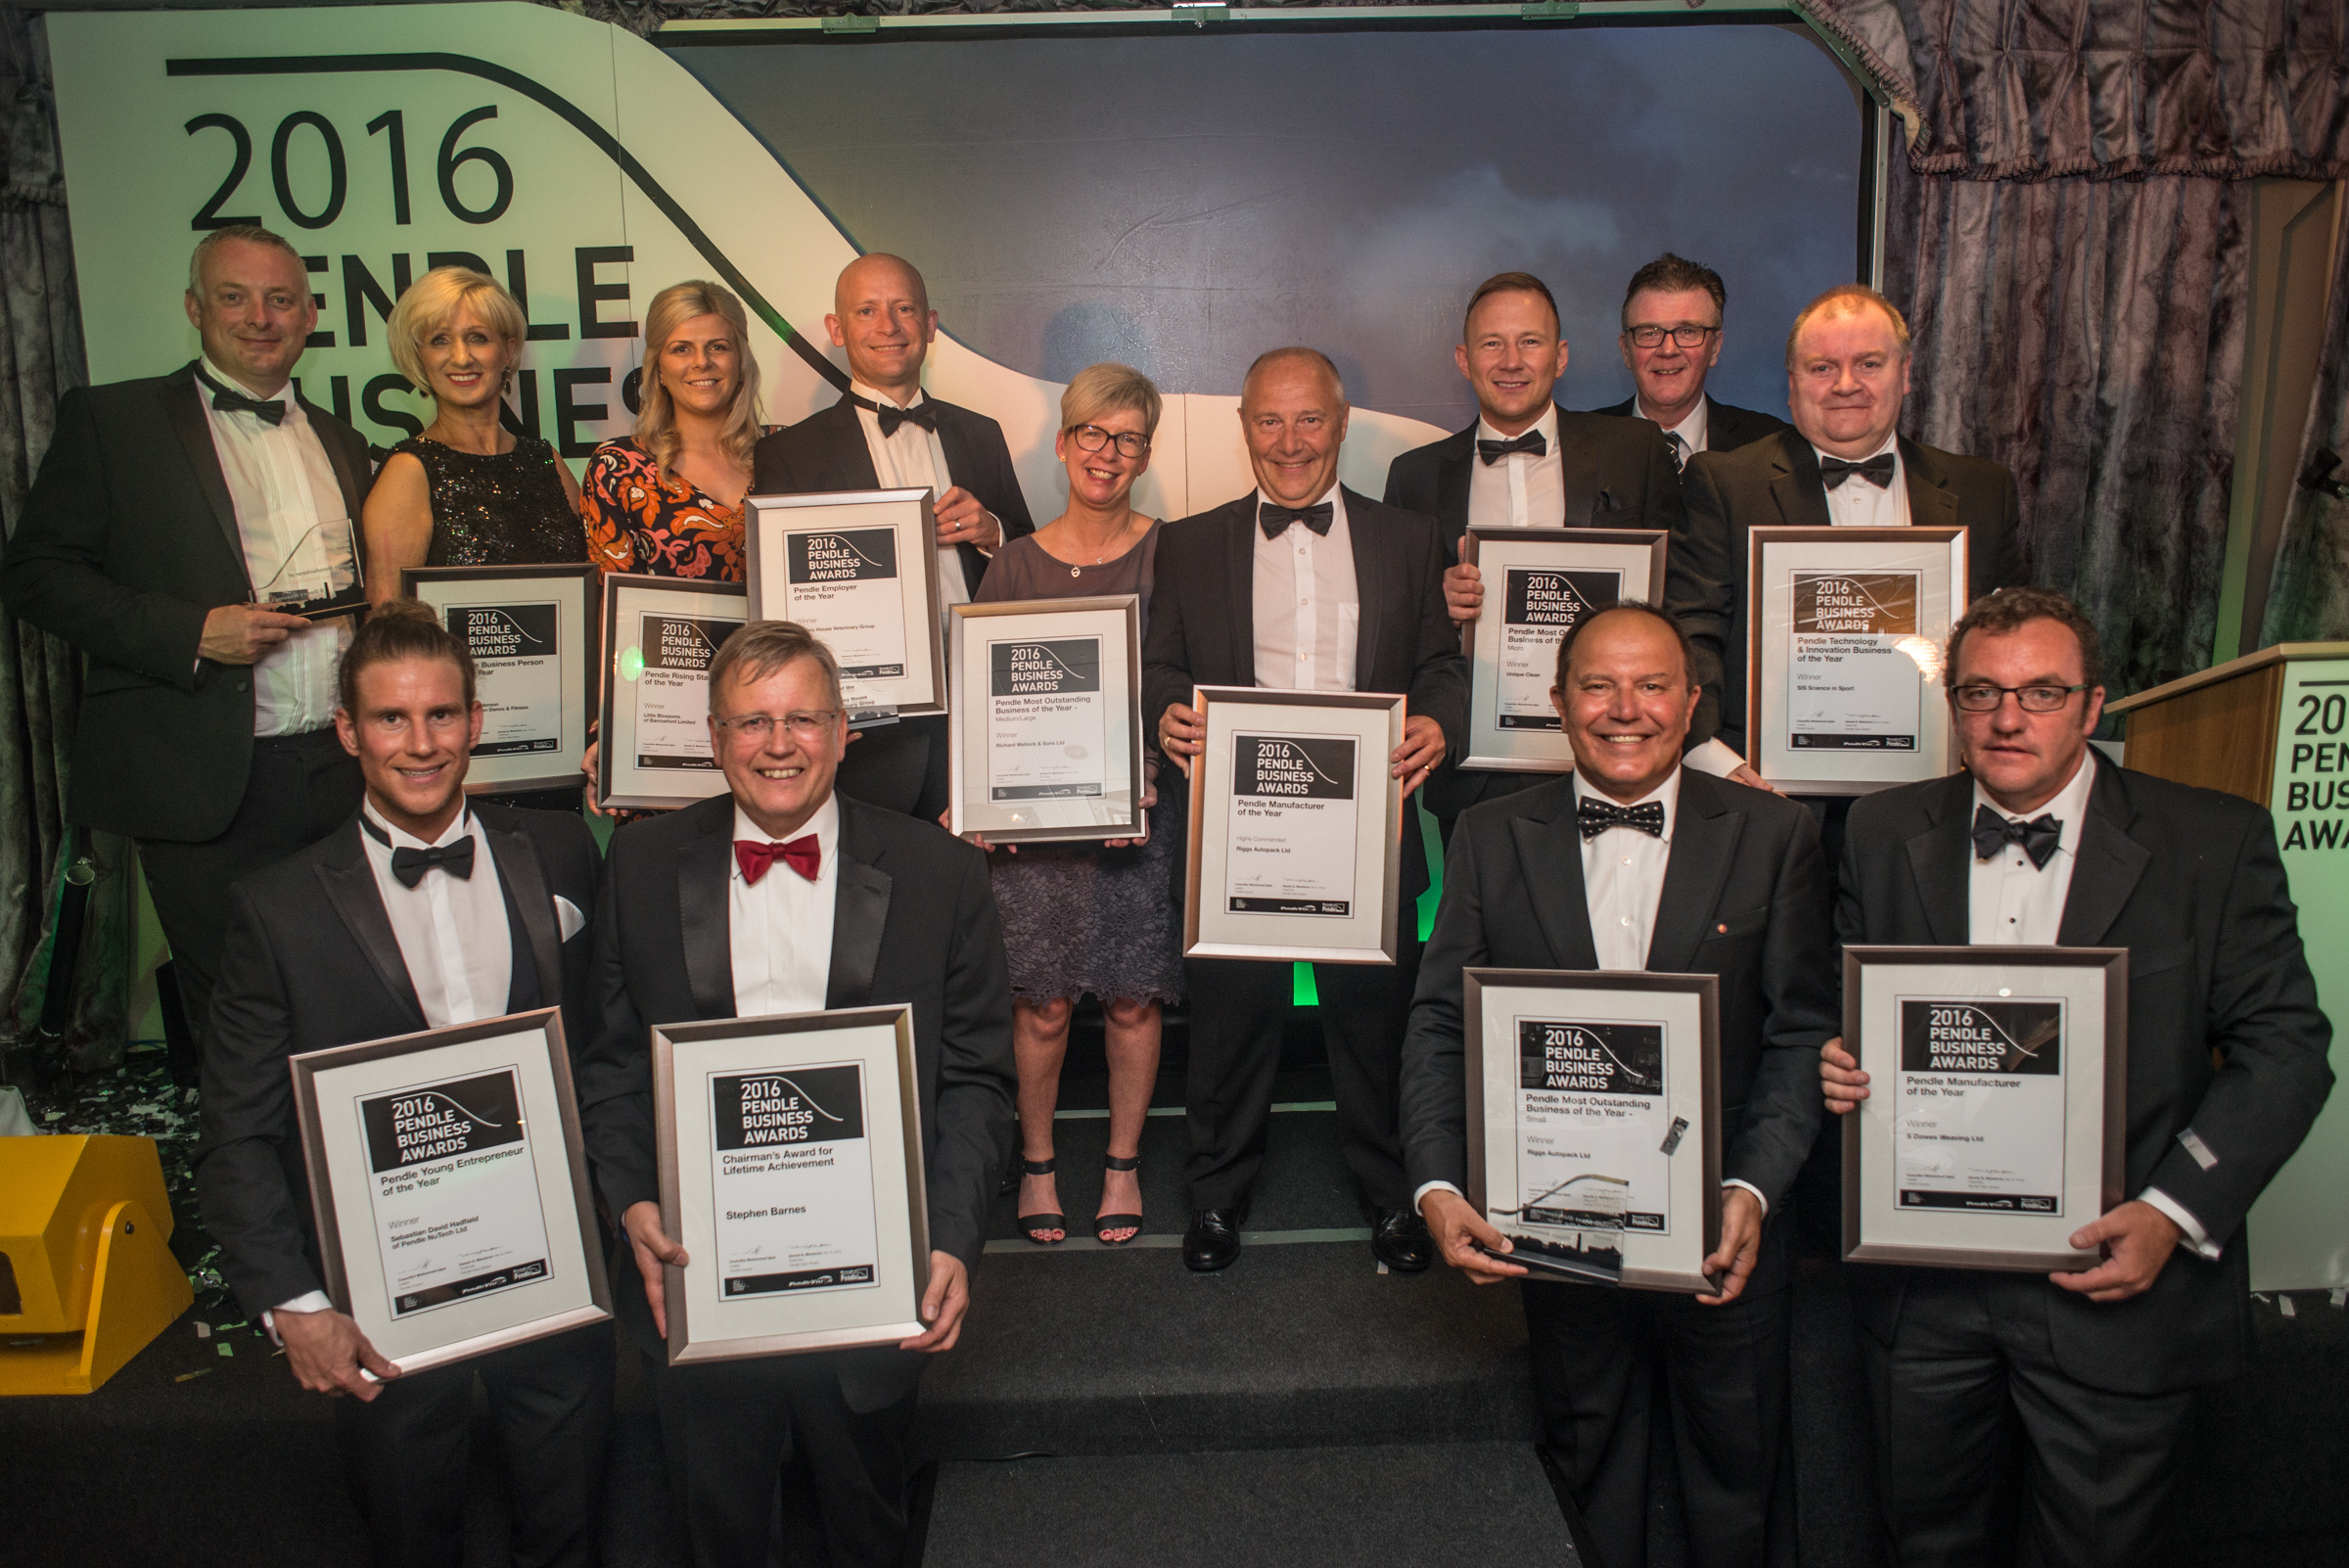 Pendle Business Awards 2016 reveals its winners!